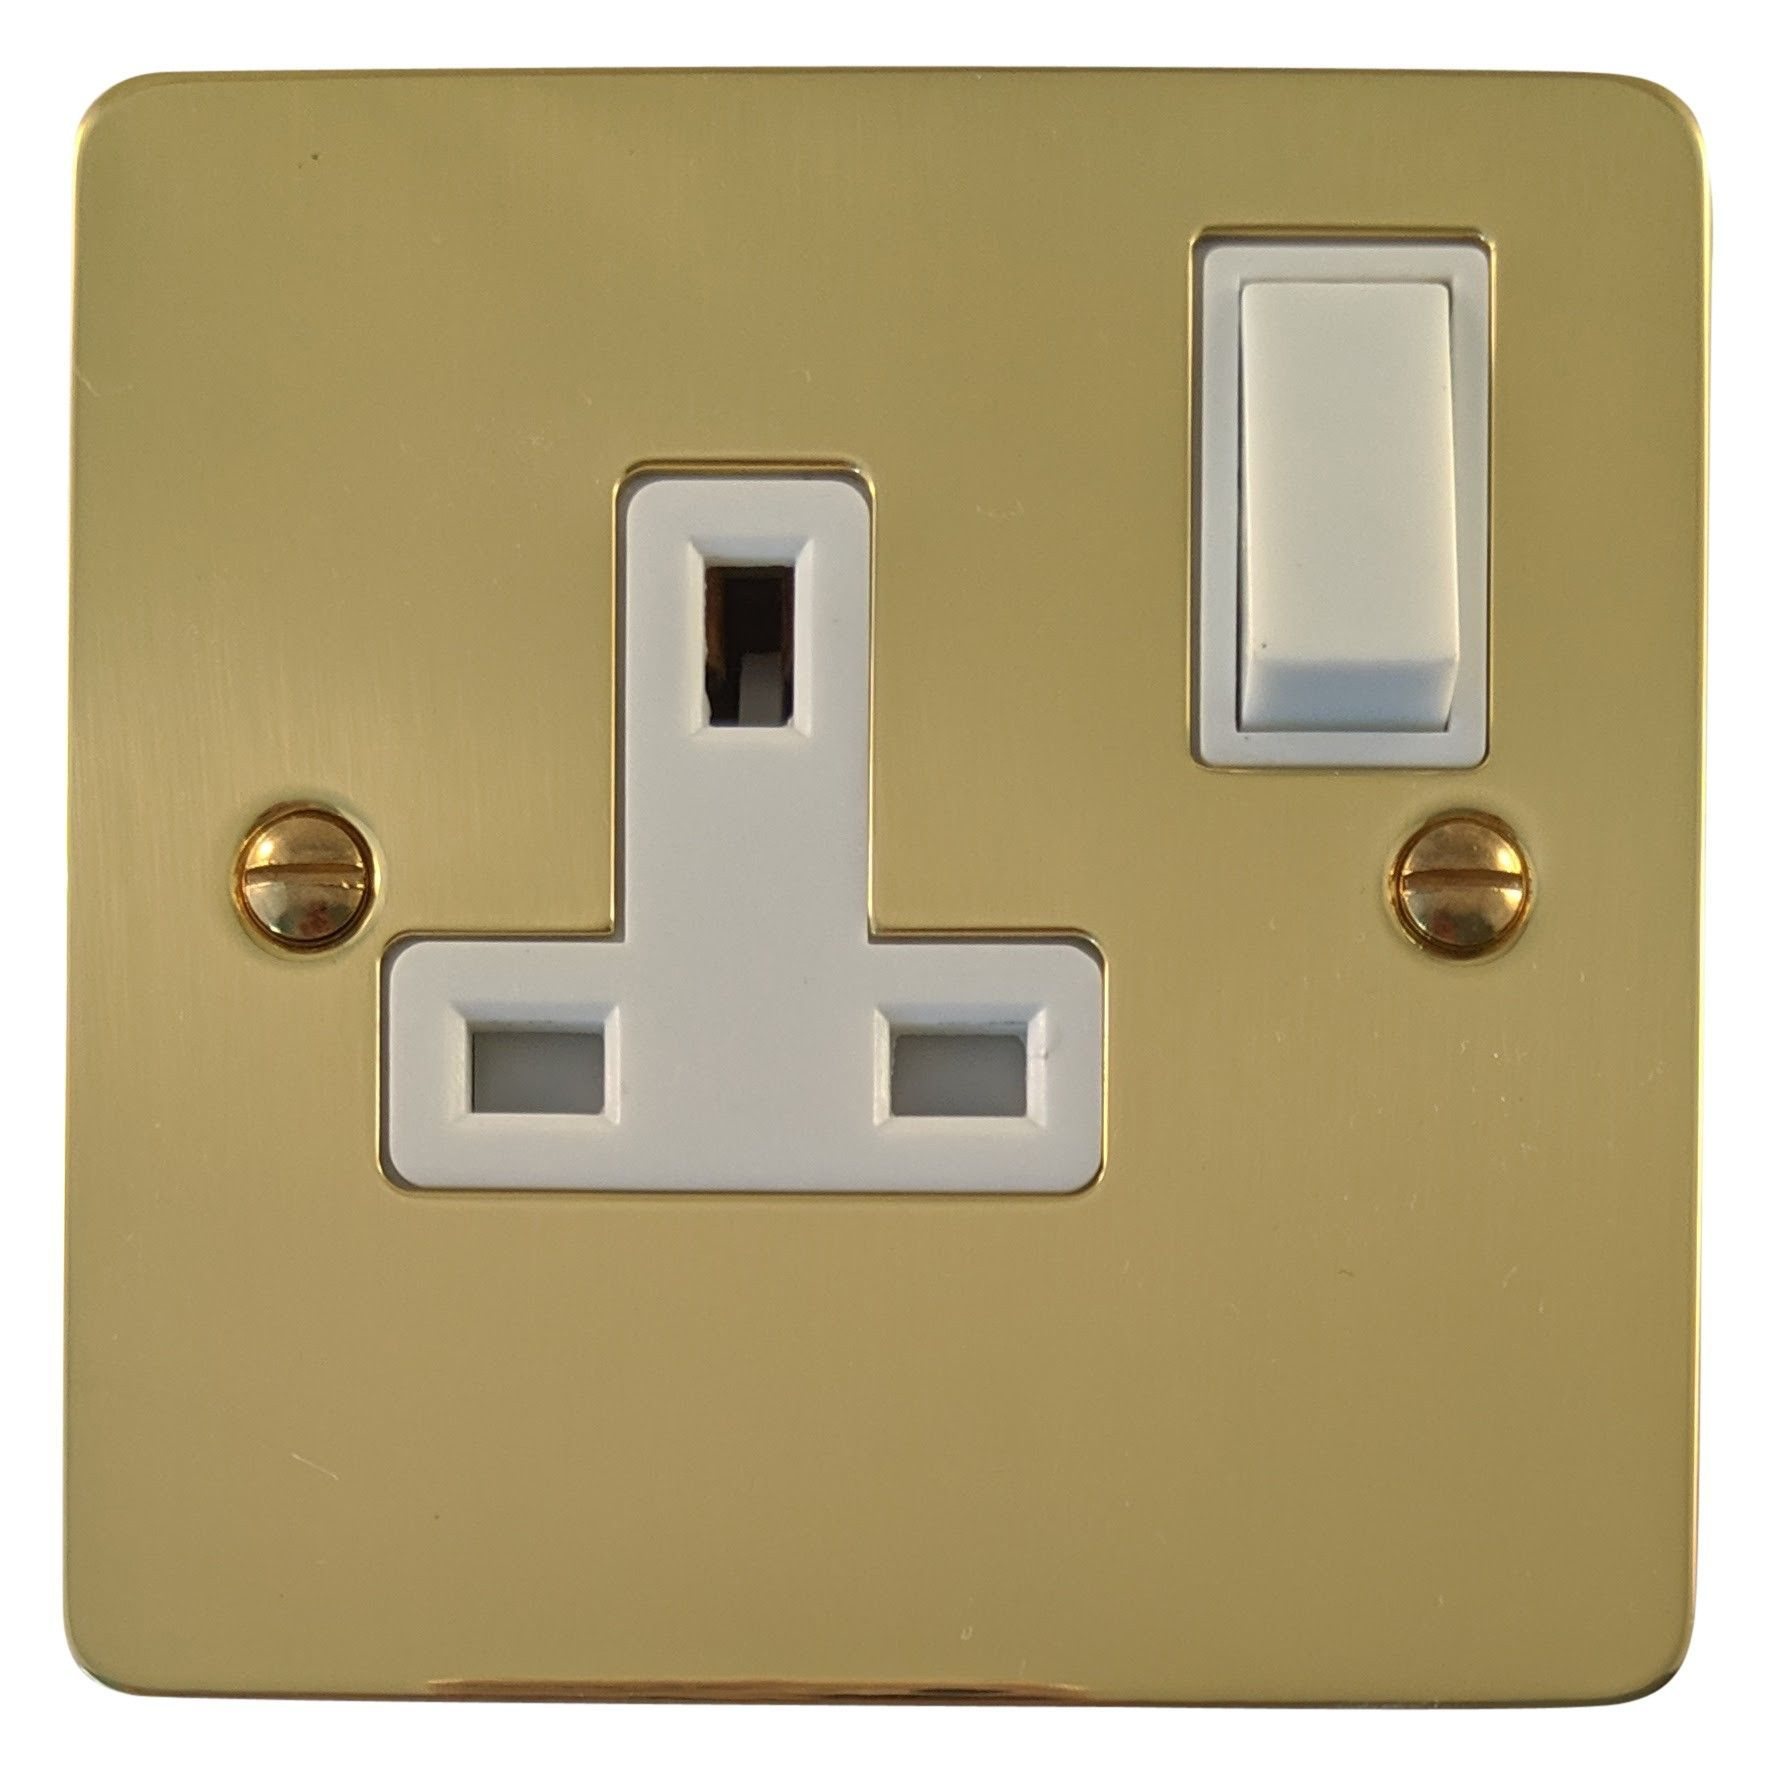 G&H FB9W Flat Plate Polished Brass 1 Gang Single 13A Switched Plug Socket